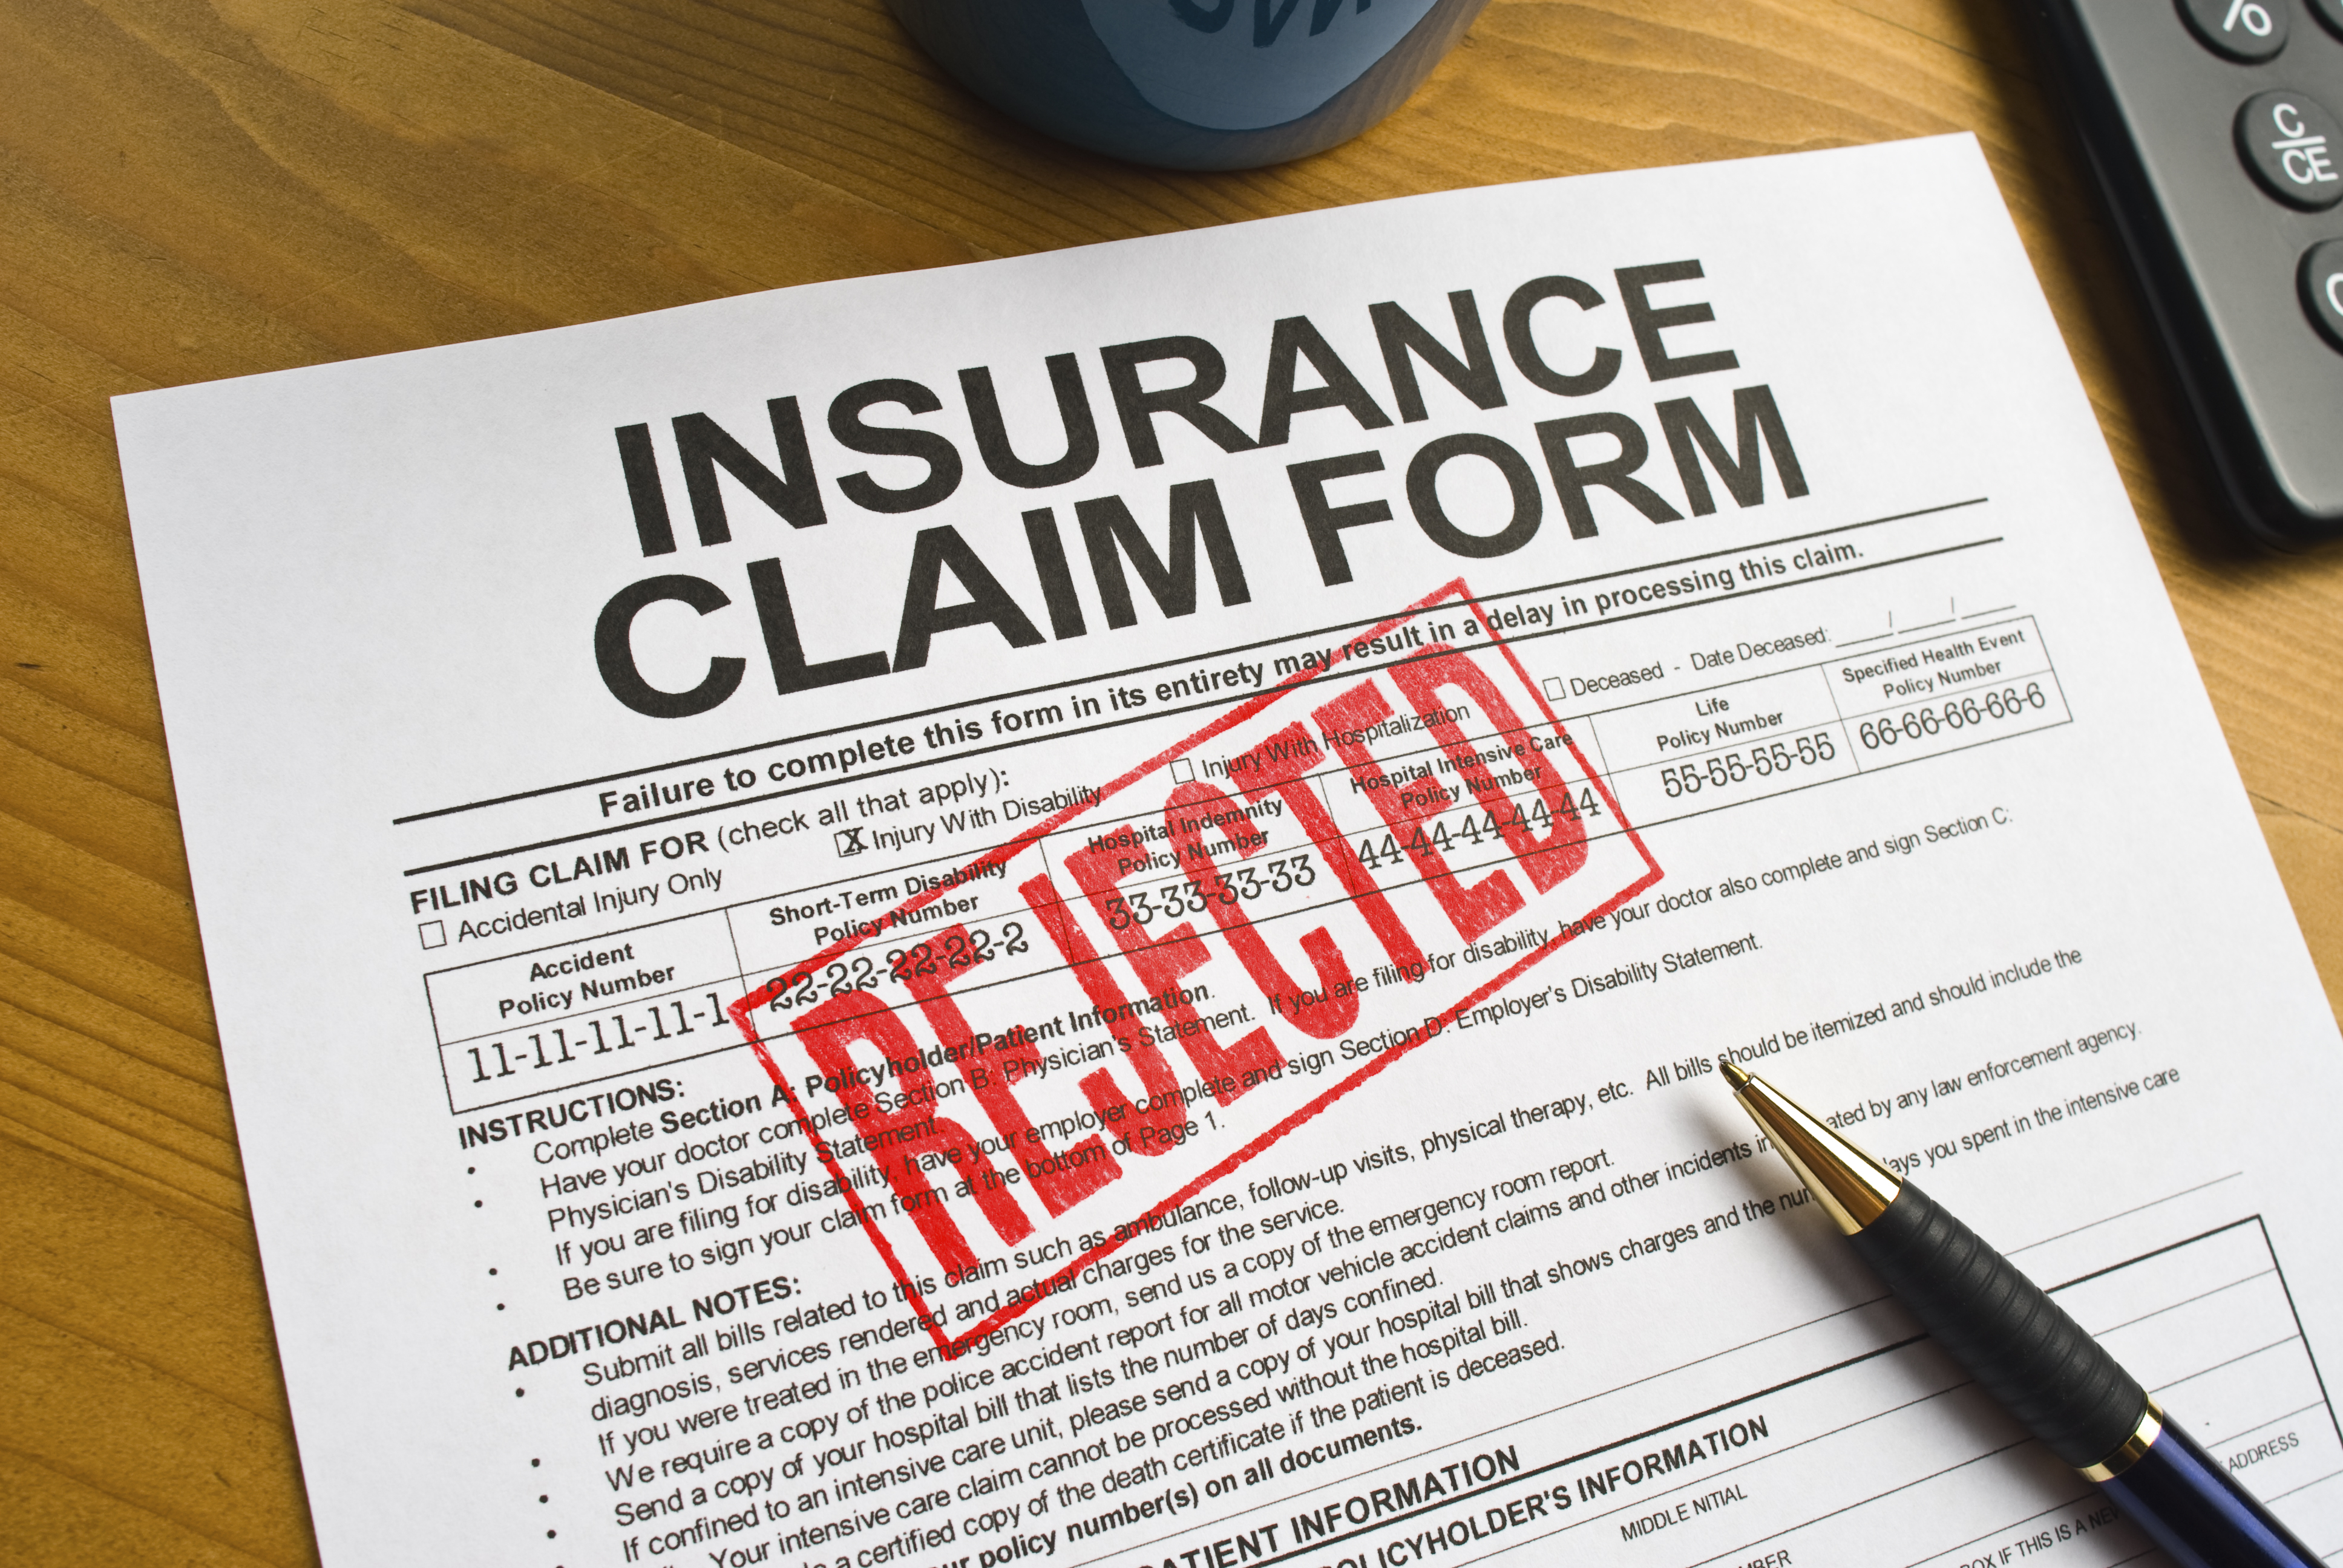 iStock - Rejected Insurance Claim 7-6-15 (3Credit)